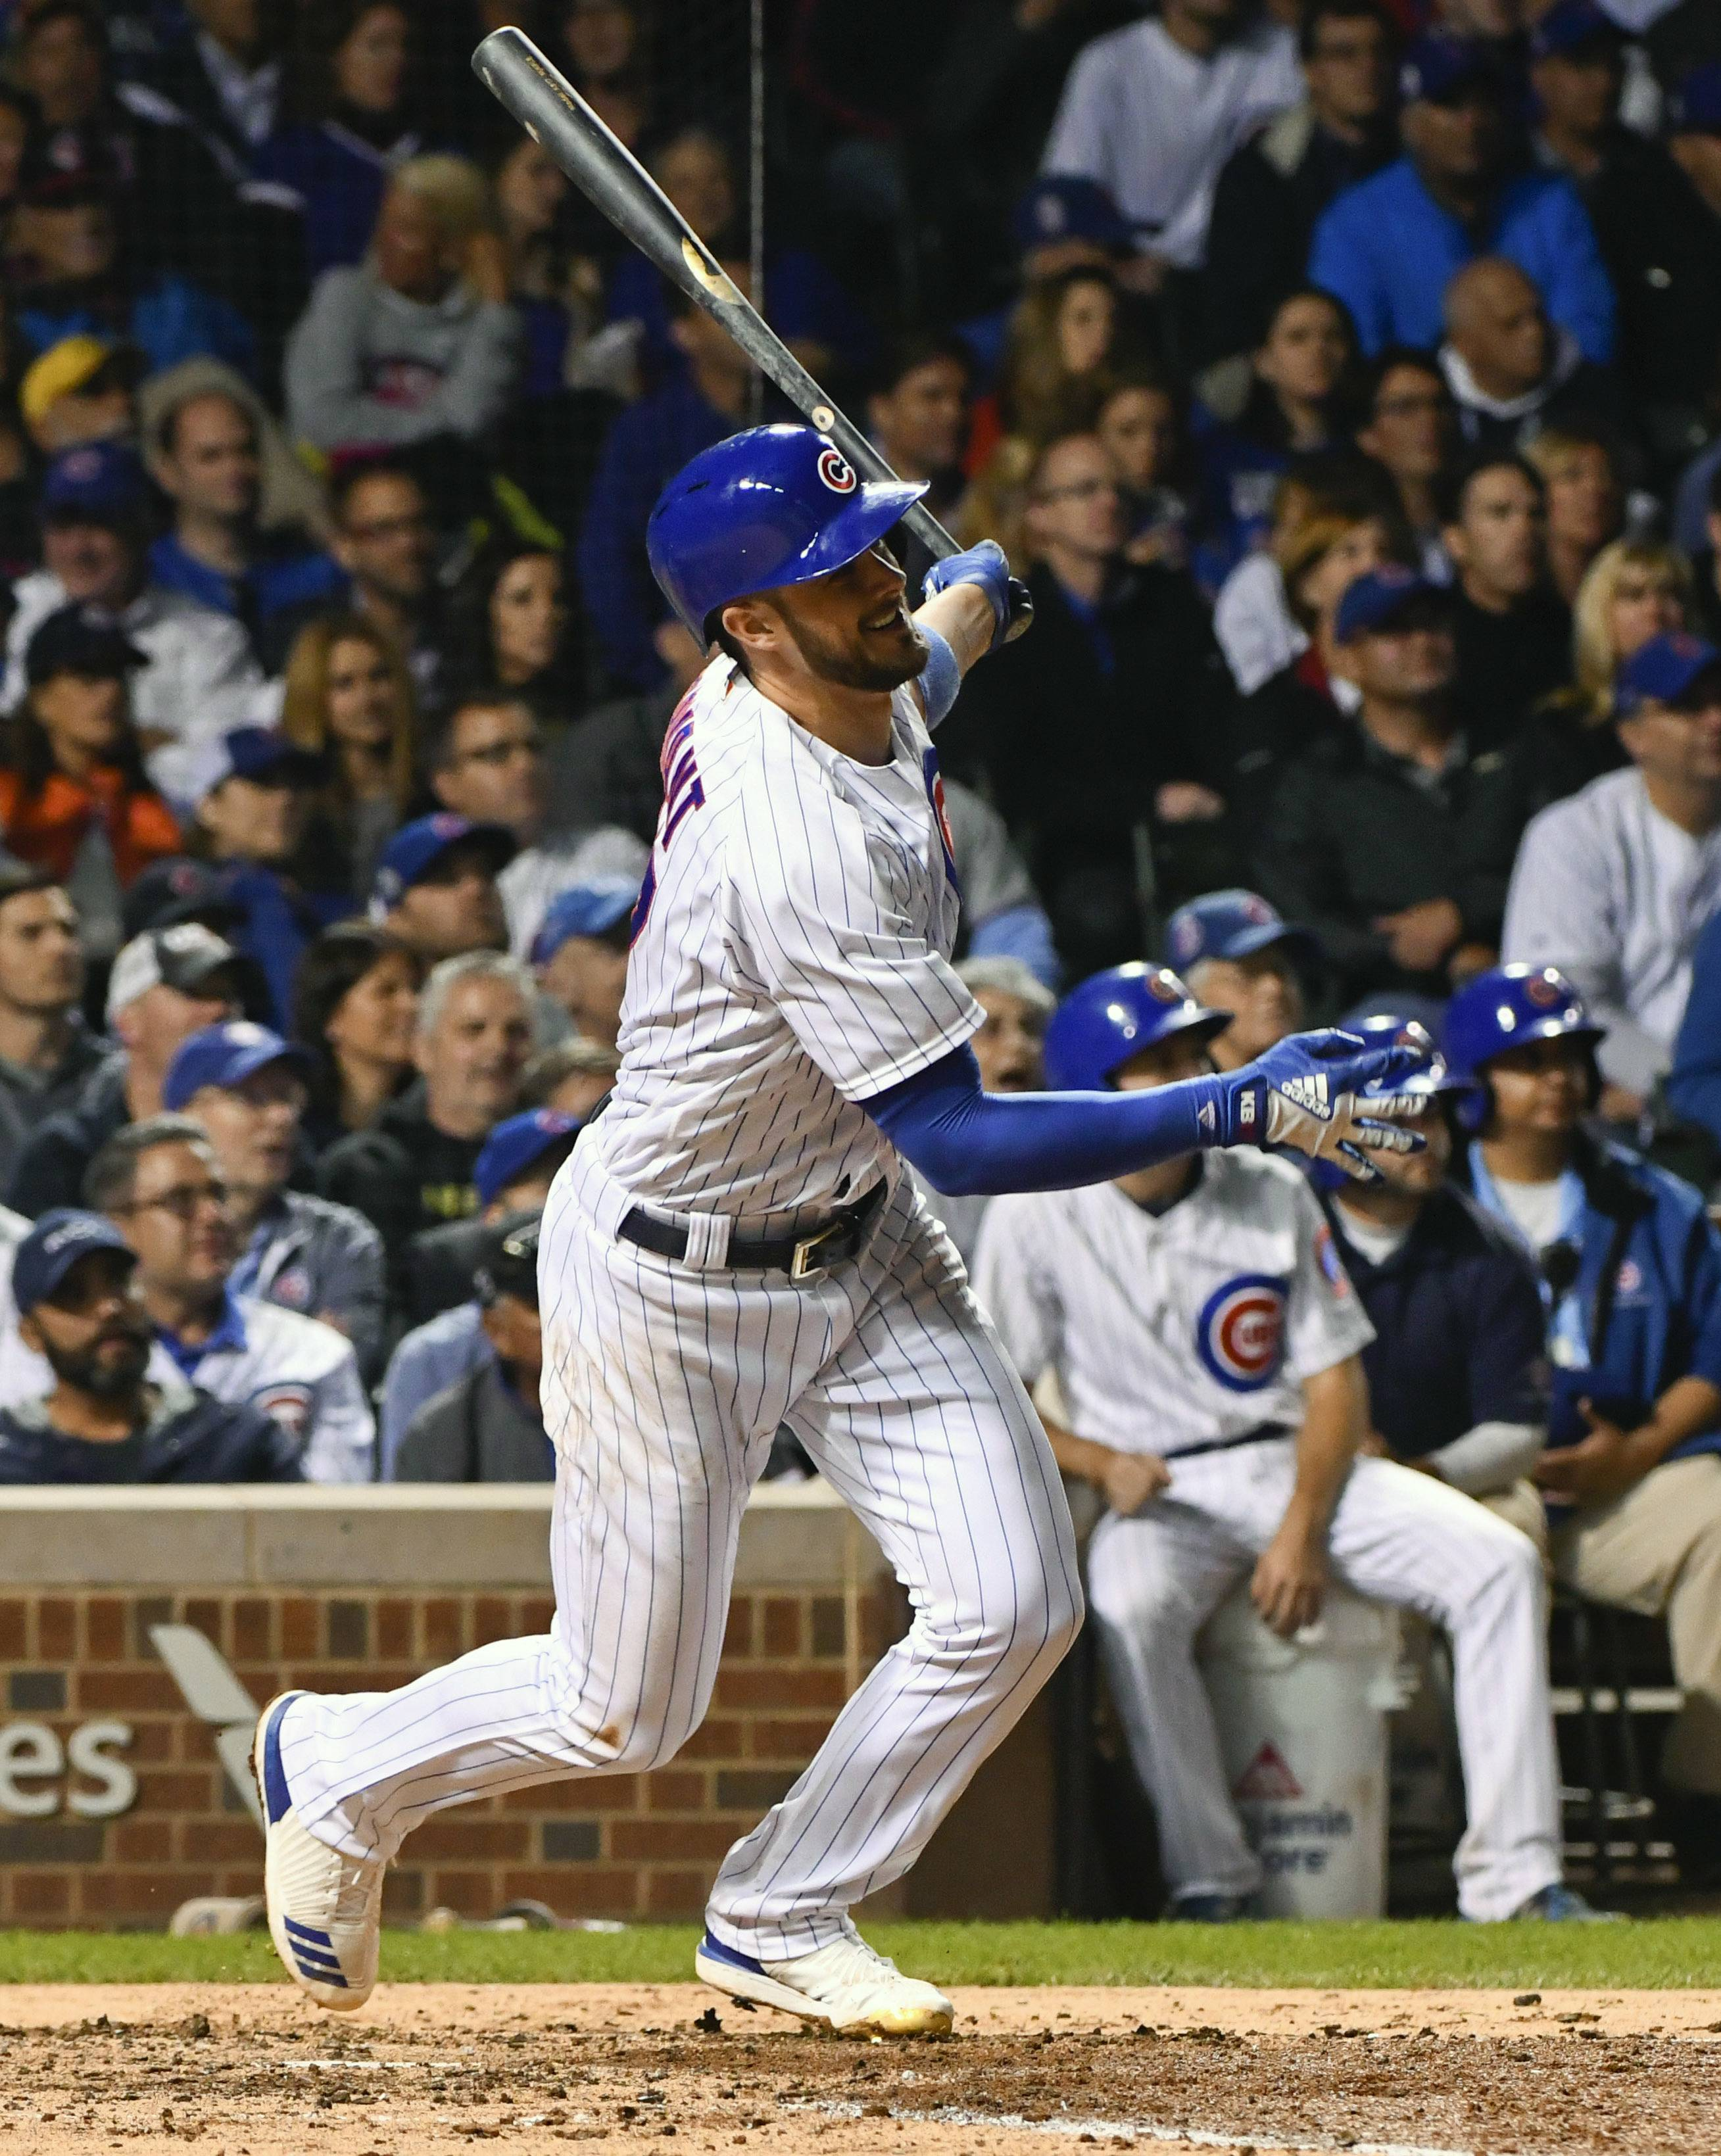 Cubs third baseman Kris Bryant watches his 3-run homer leave the yard against the New York Mets during the fourth inning at Wrigley Field on Tuesday.